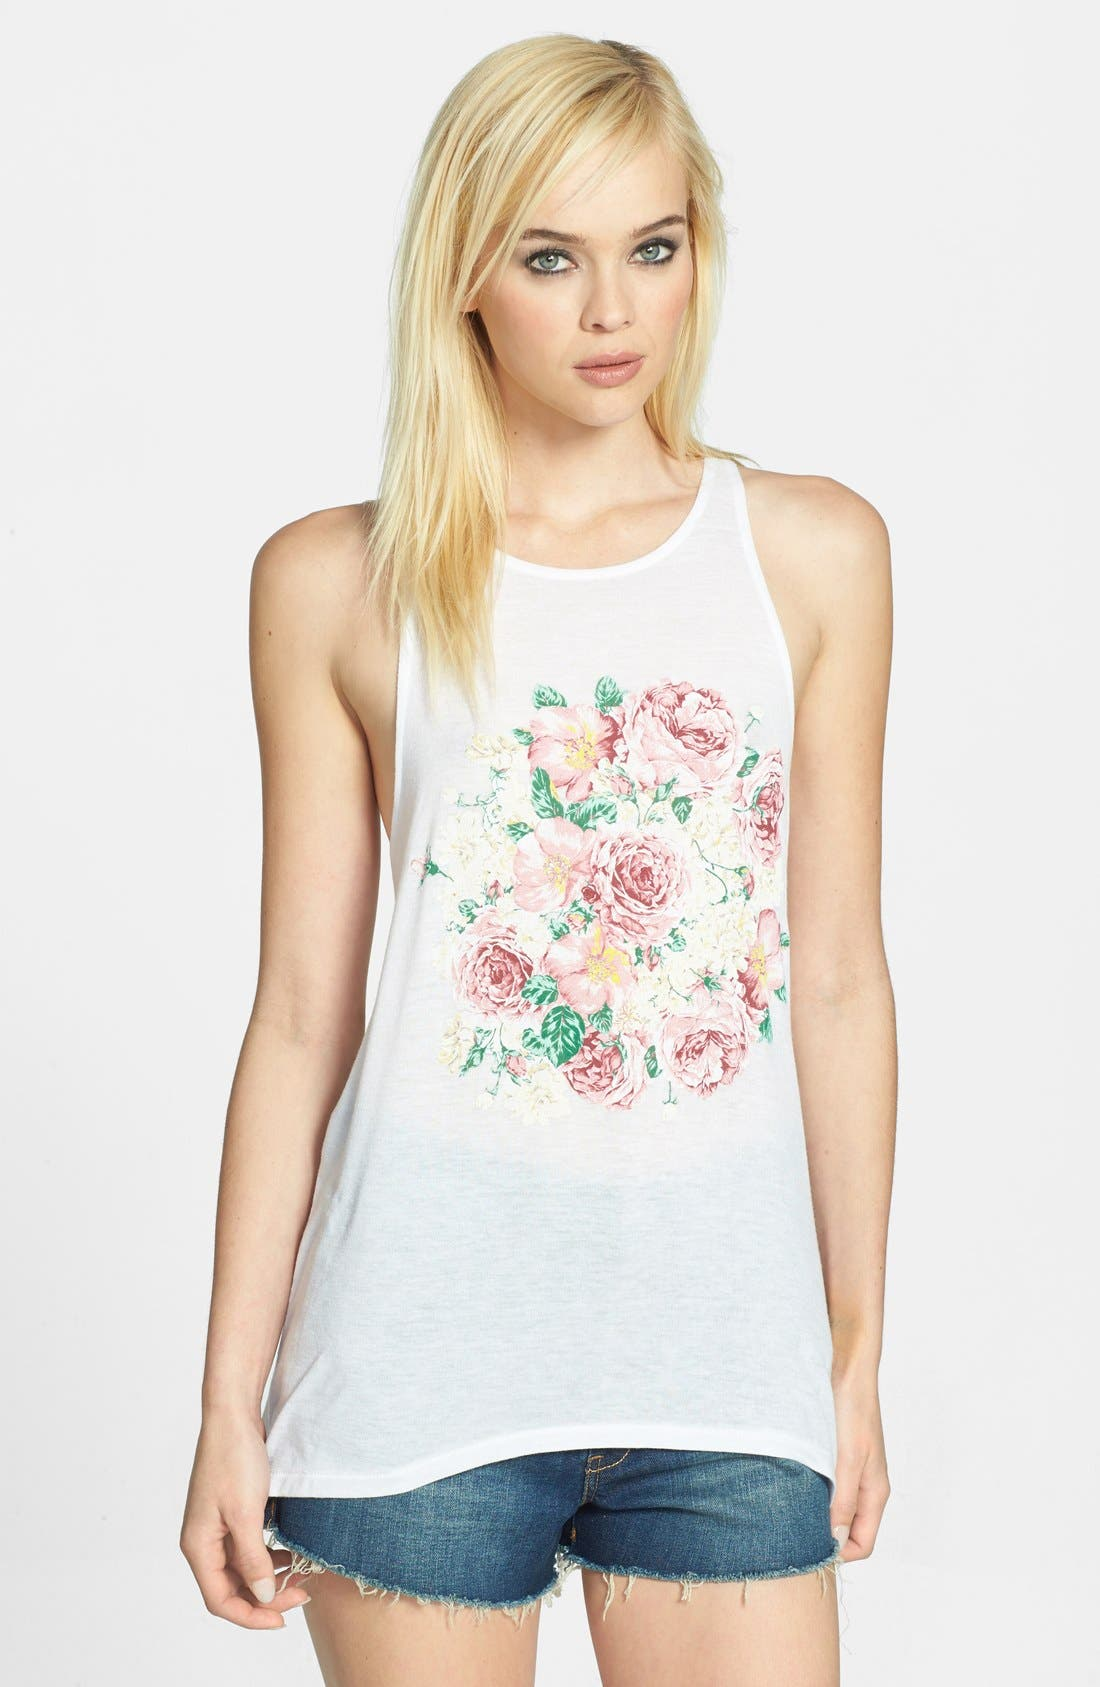 Main Image - In Love With Strangers Floral Graphic Muscle Tank